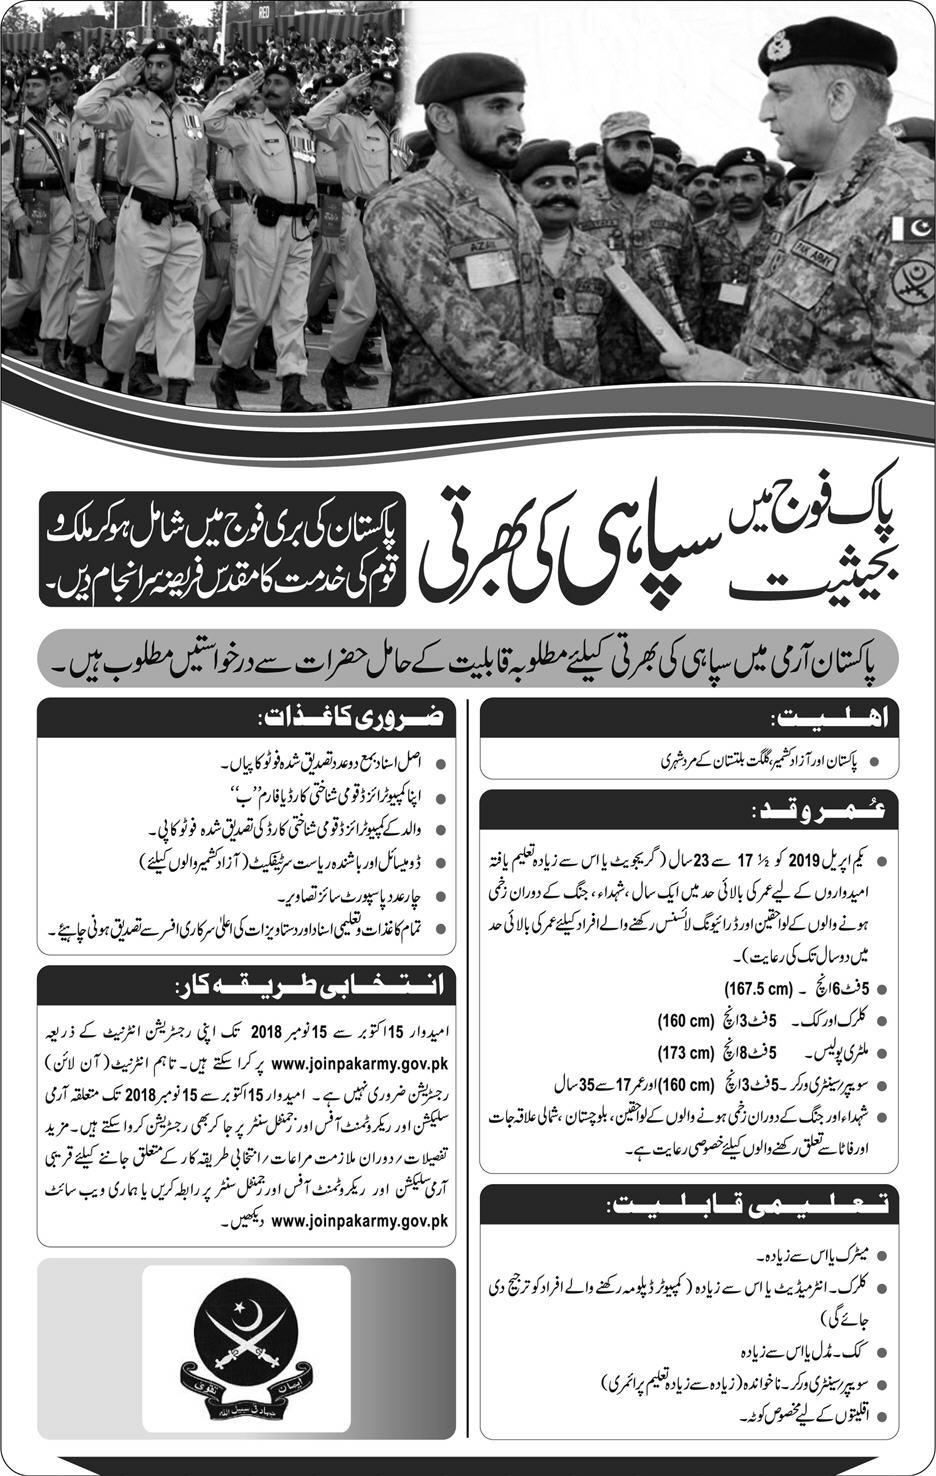 Pakistan Army Soldier Jobs 2018 Online Registration